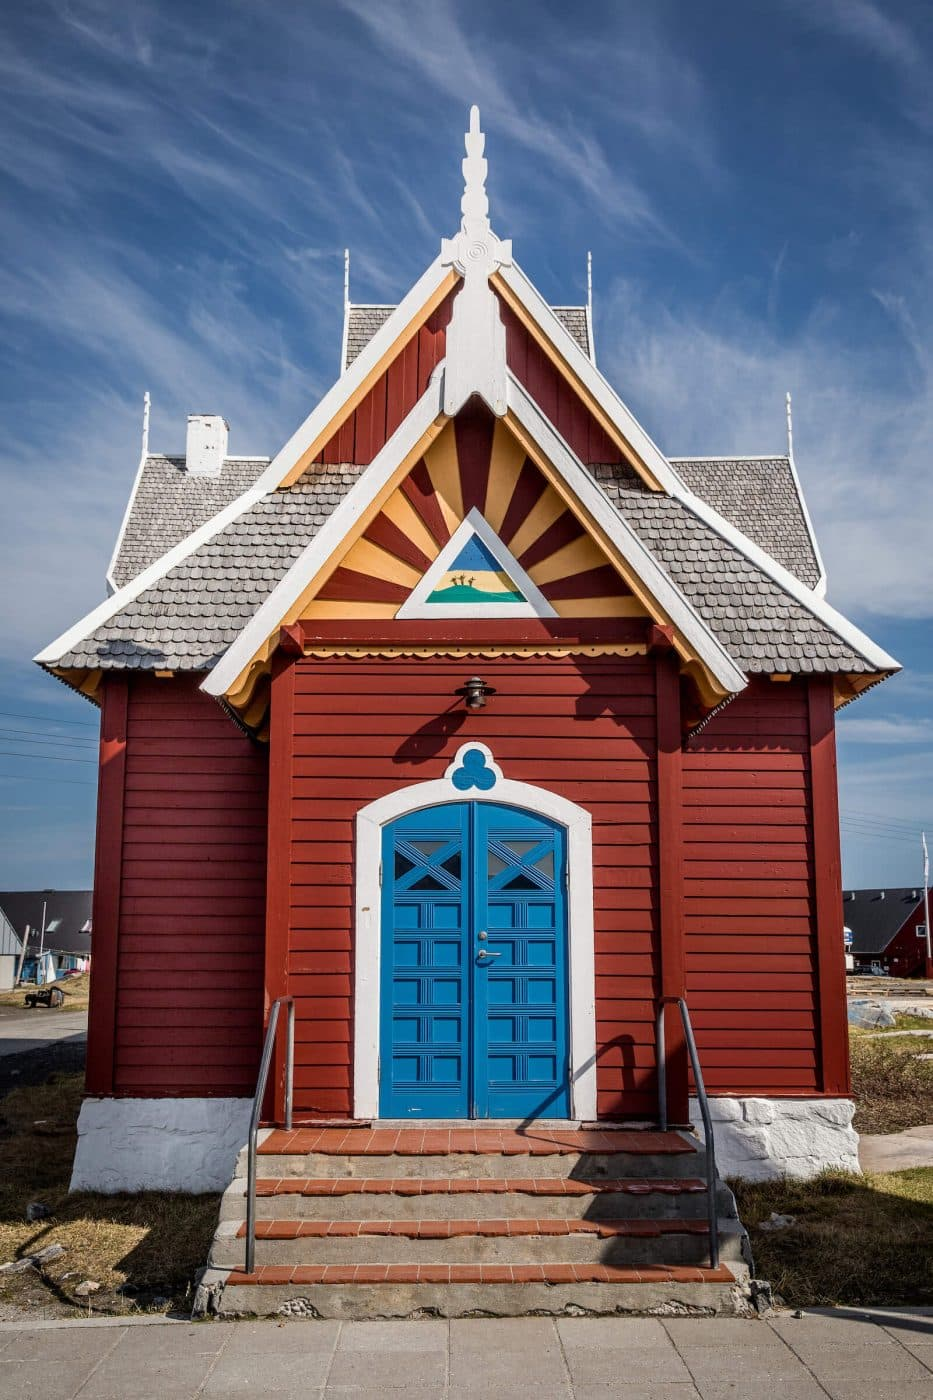 The church entrance in Qeqertarsuaq in Greenland. Photo by Mads Pihl.